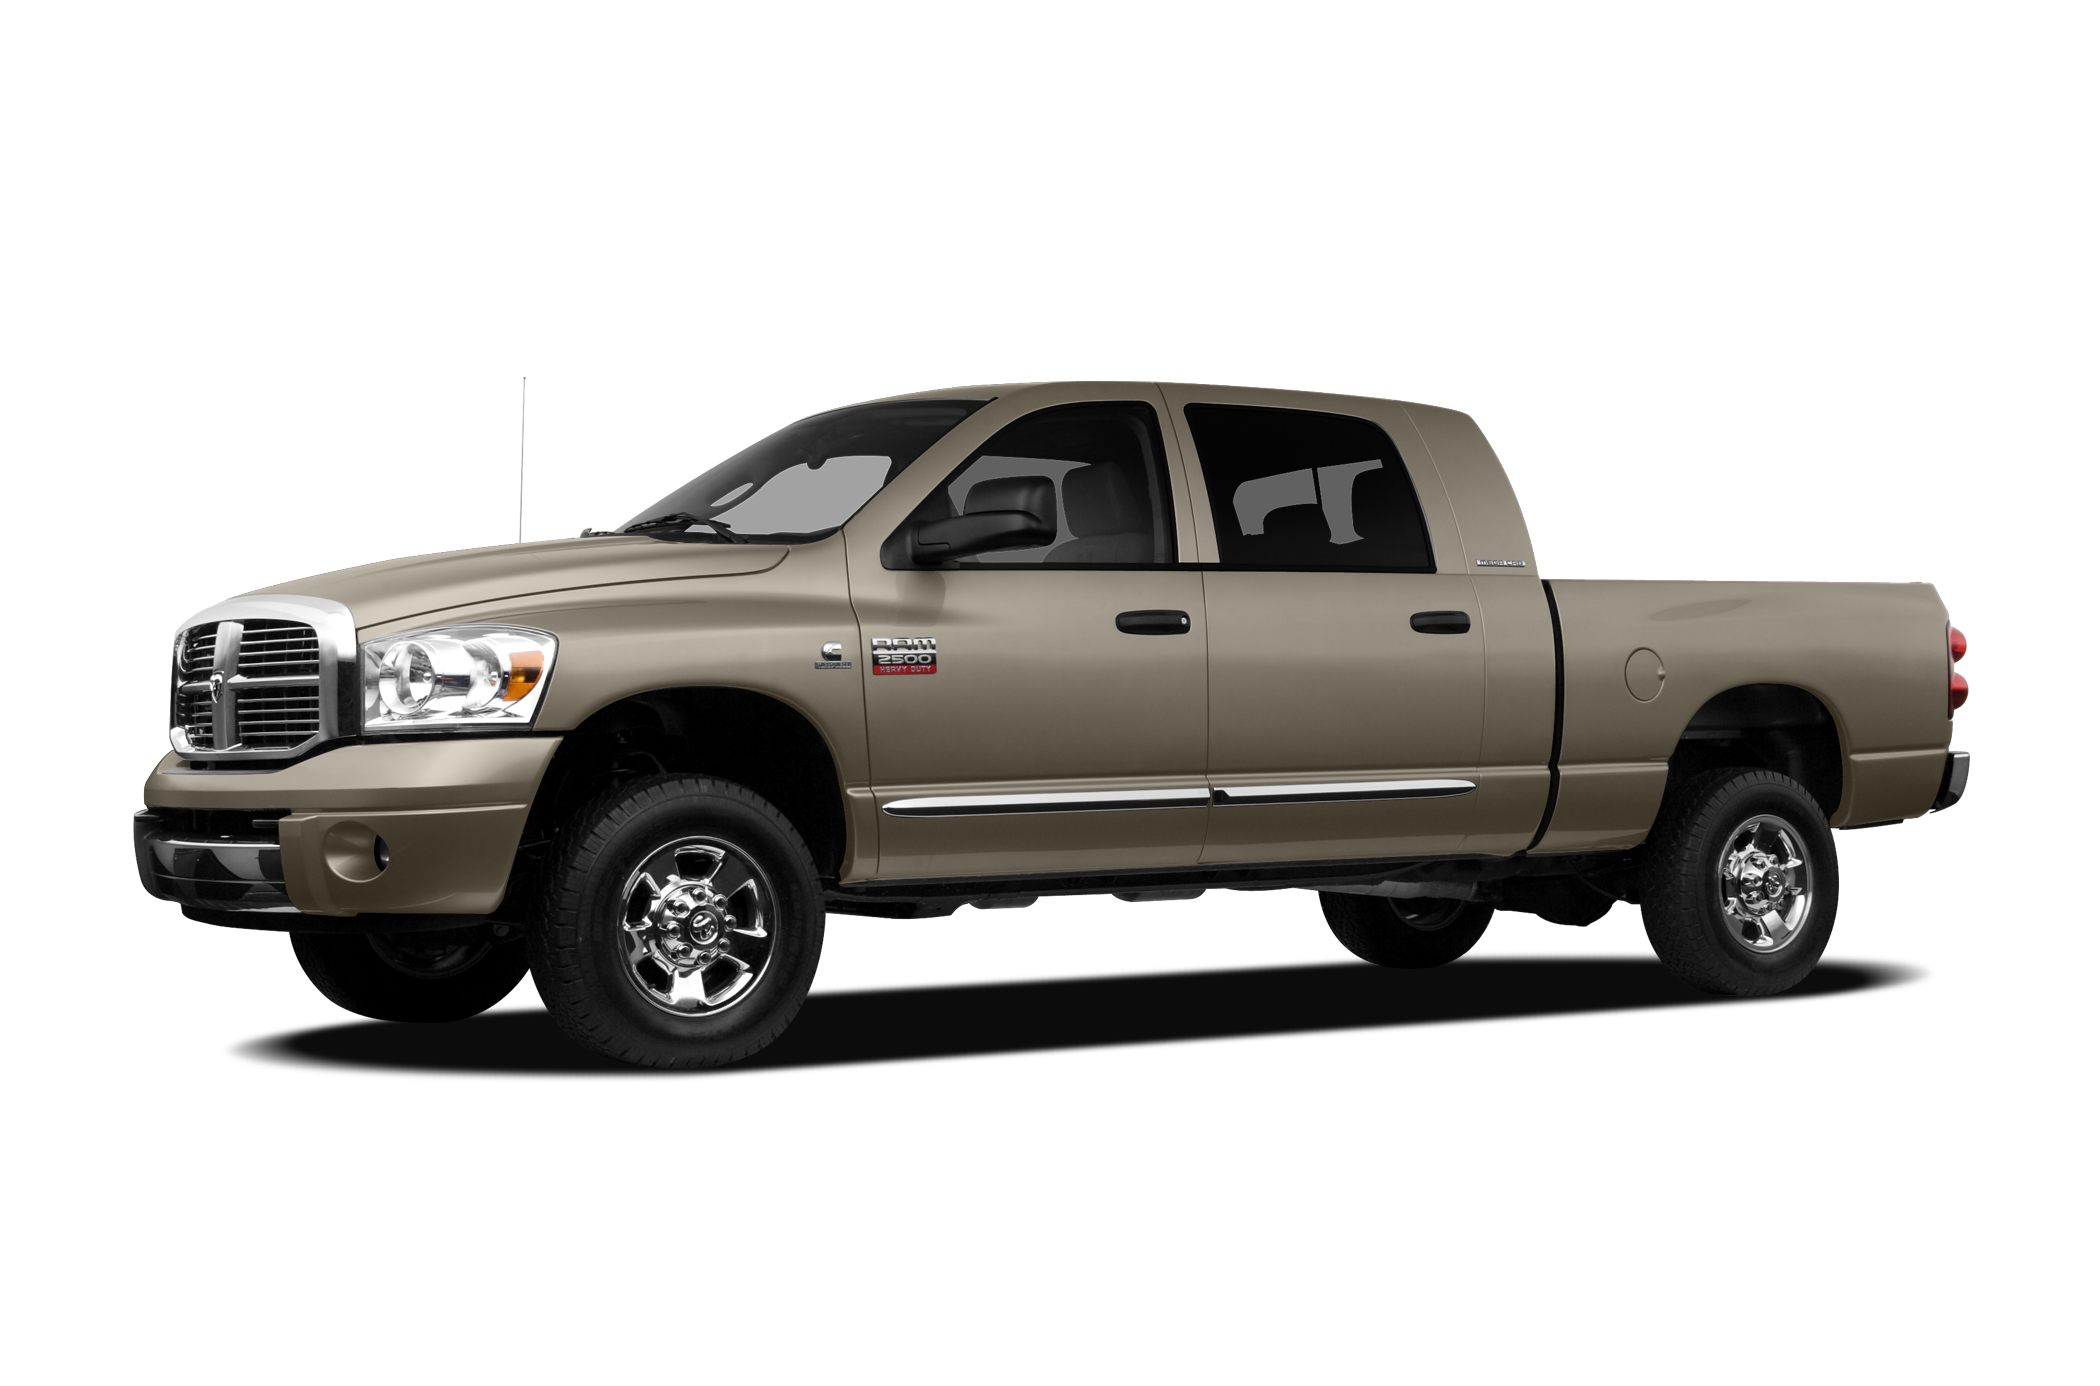 2007 Dodge Ram 2500 Laramie 4x4 Mega Cab 160 5 In Wb Specs And Prices